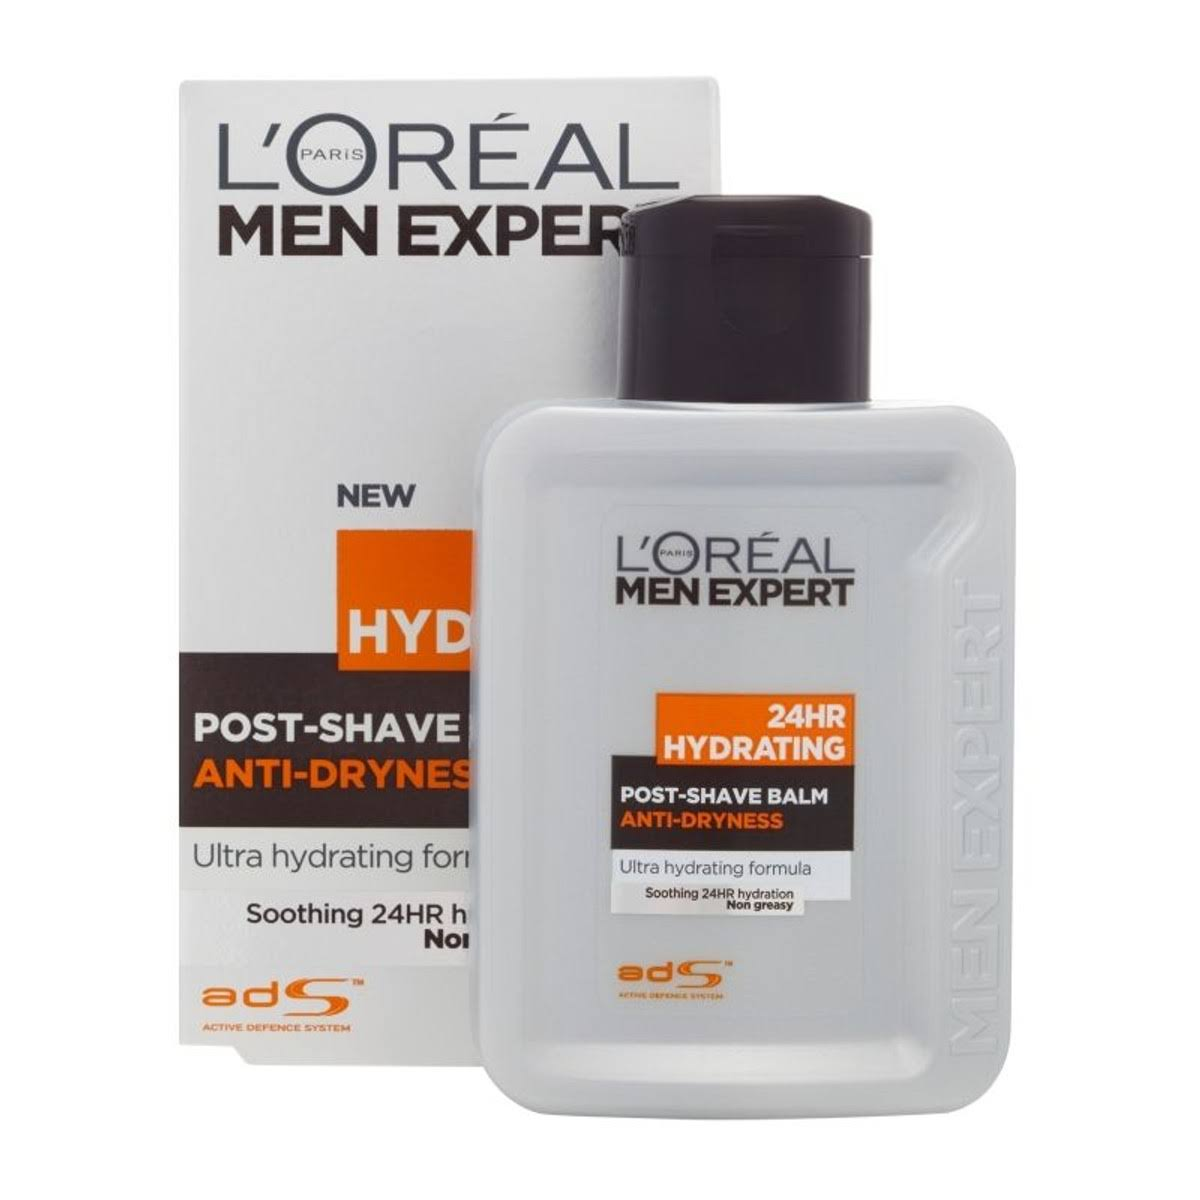 L'Oreal Men Expert 24 Hour Hydrating Balm - 100ml